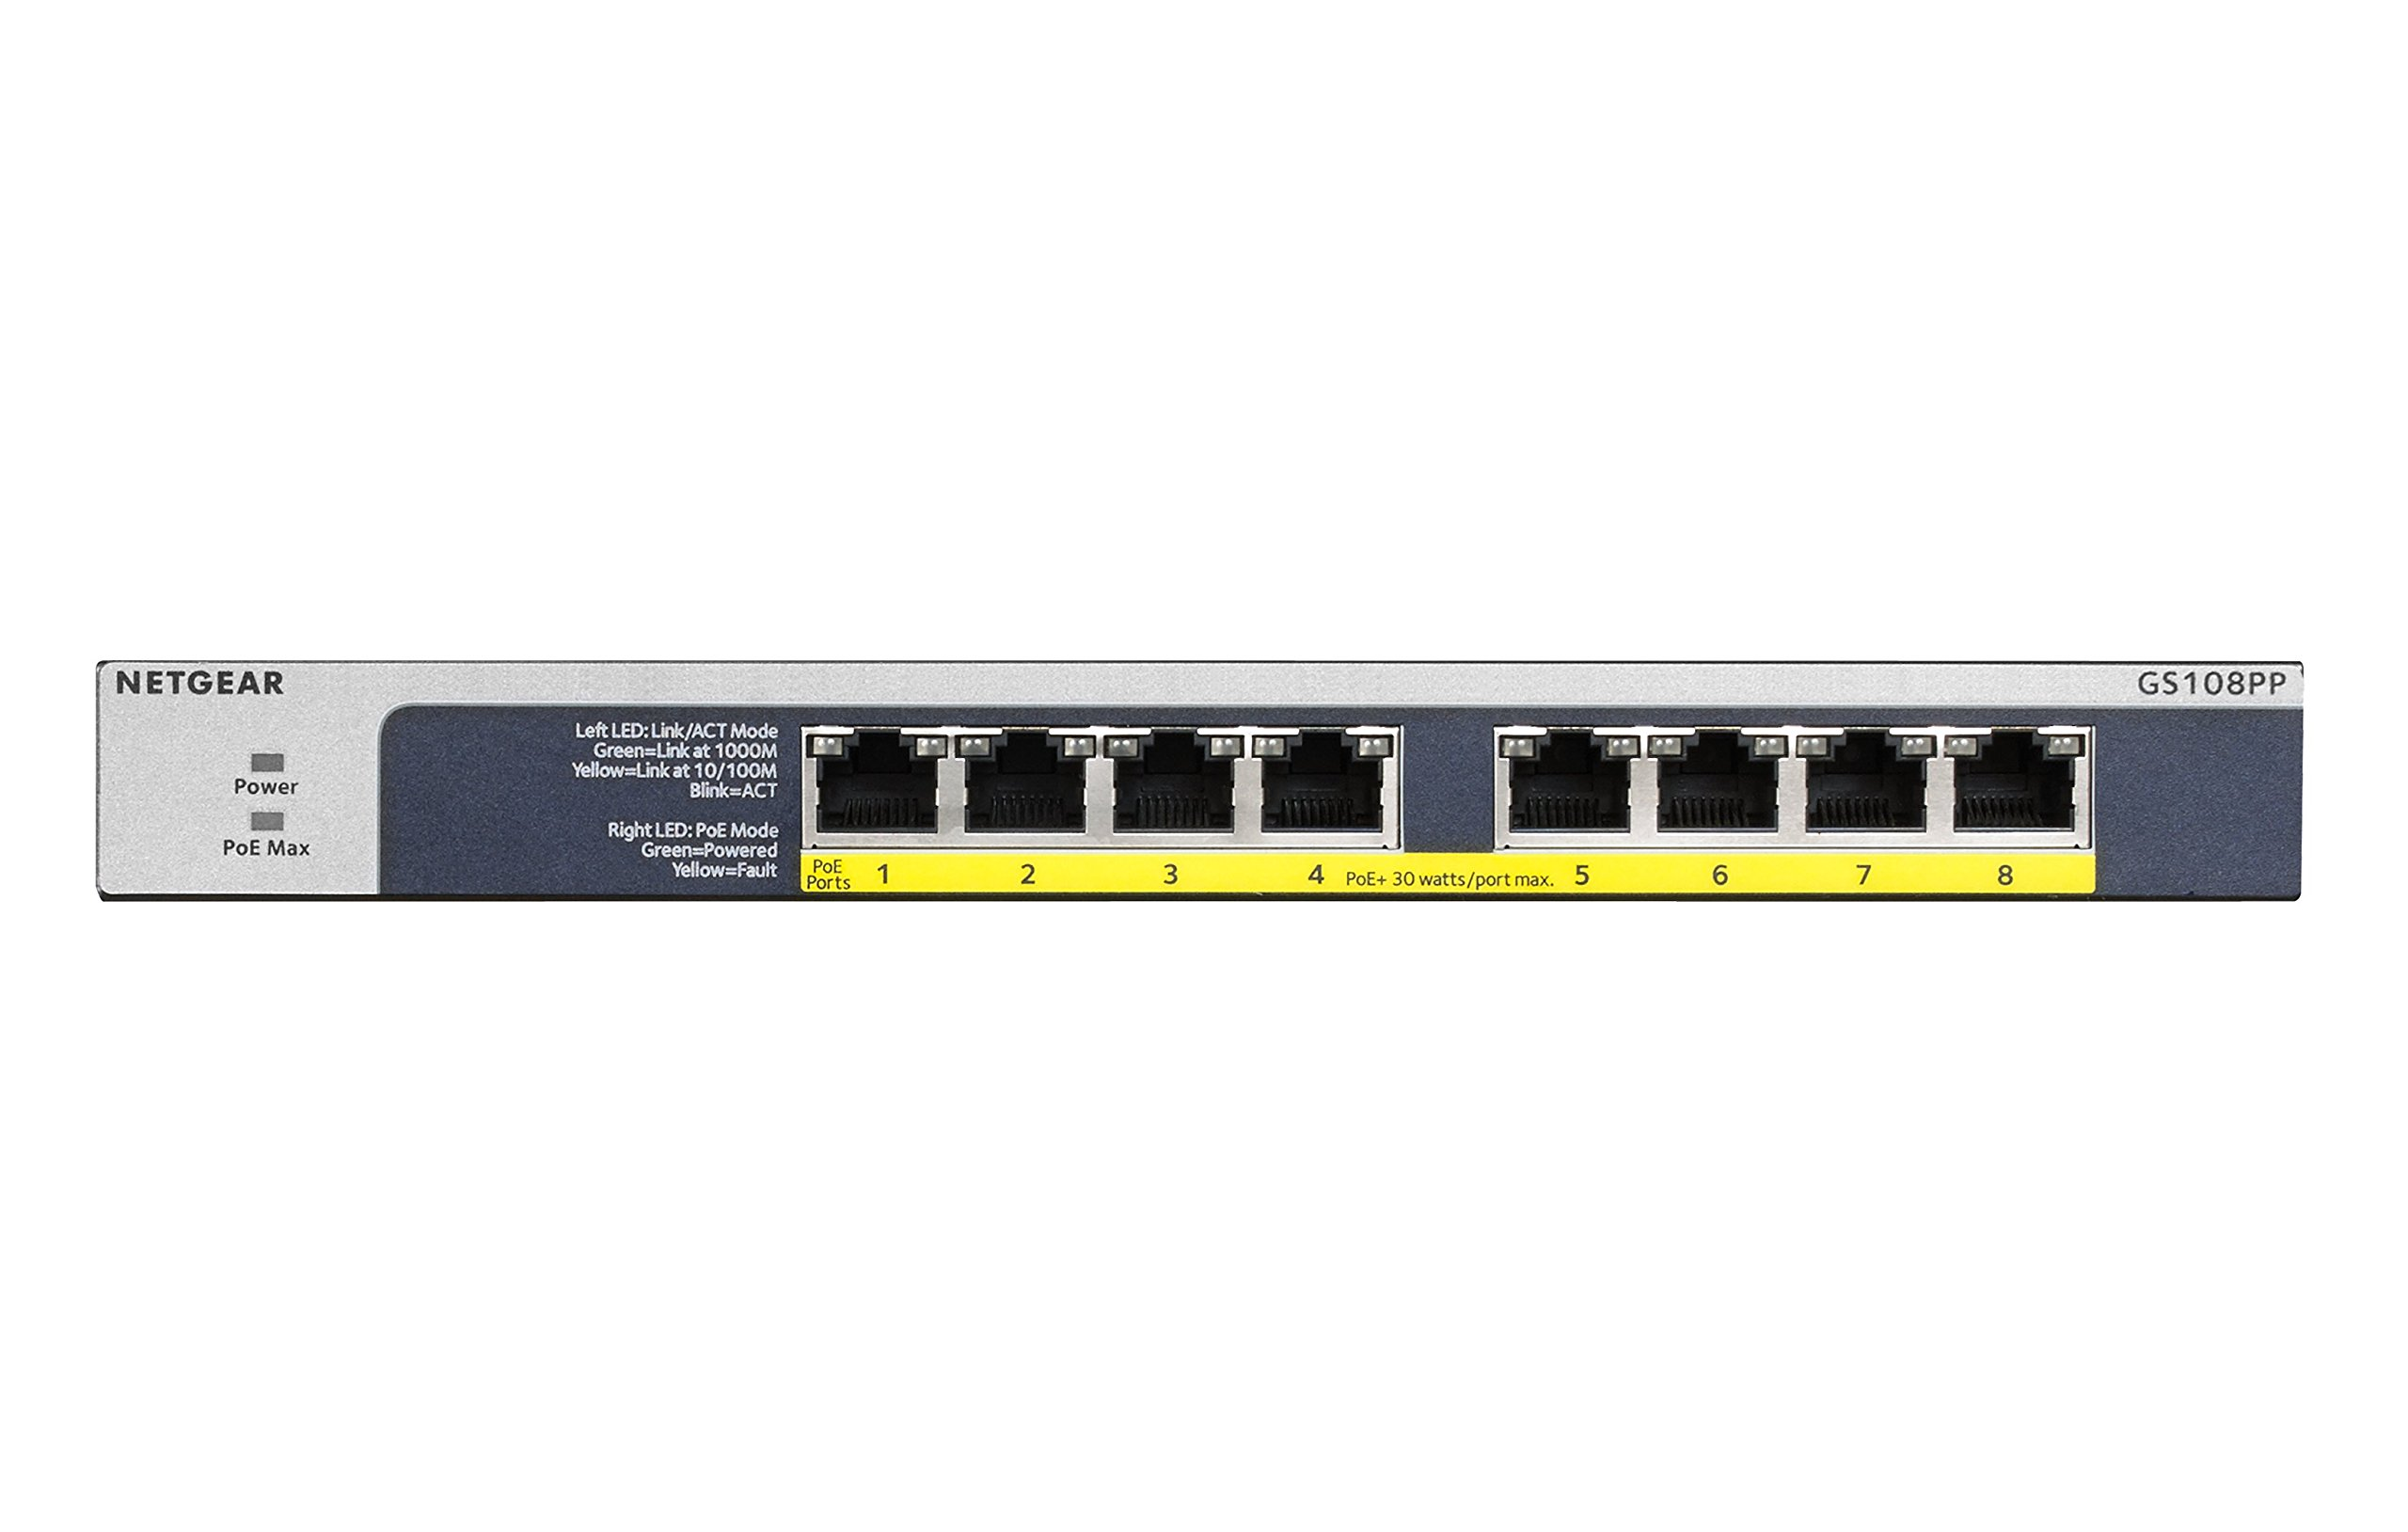 NETGEAR 8-Port Gigabit Unmanaged Switch, PoE/PoE+ 120W, Fanless, Rackmount, Plug-and-Play, ProSAFE Lifetime Protection (GS108PP) by NETGEAR (Image #3)